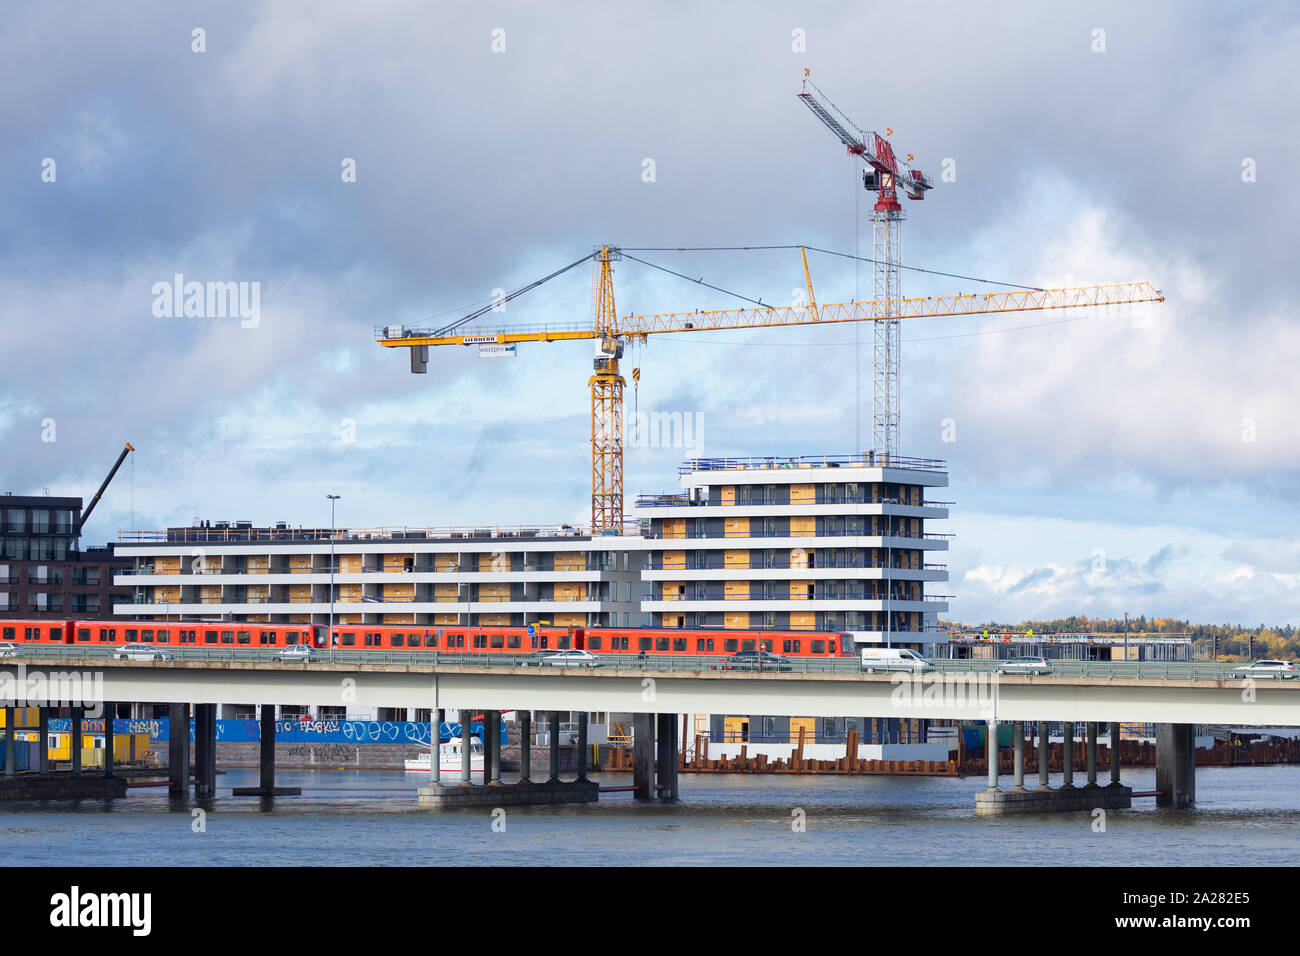 Construction proceeds actively at the new Kalasatama business and residential area of Helsinki, Finland. Stock Photo